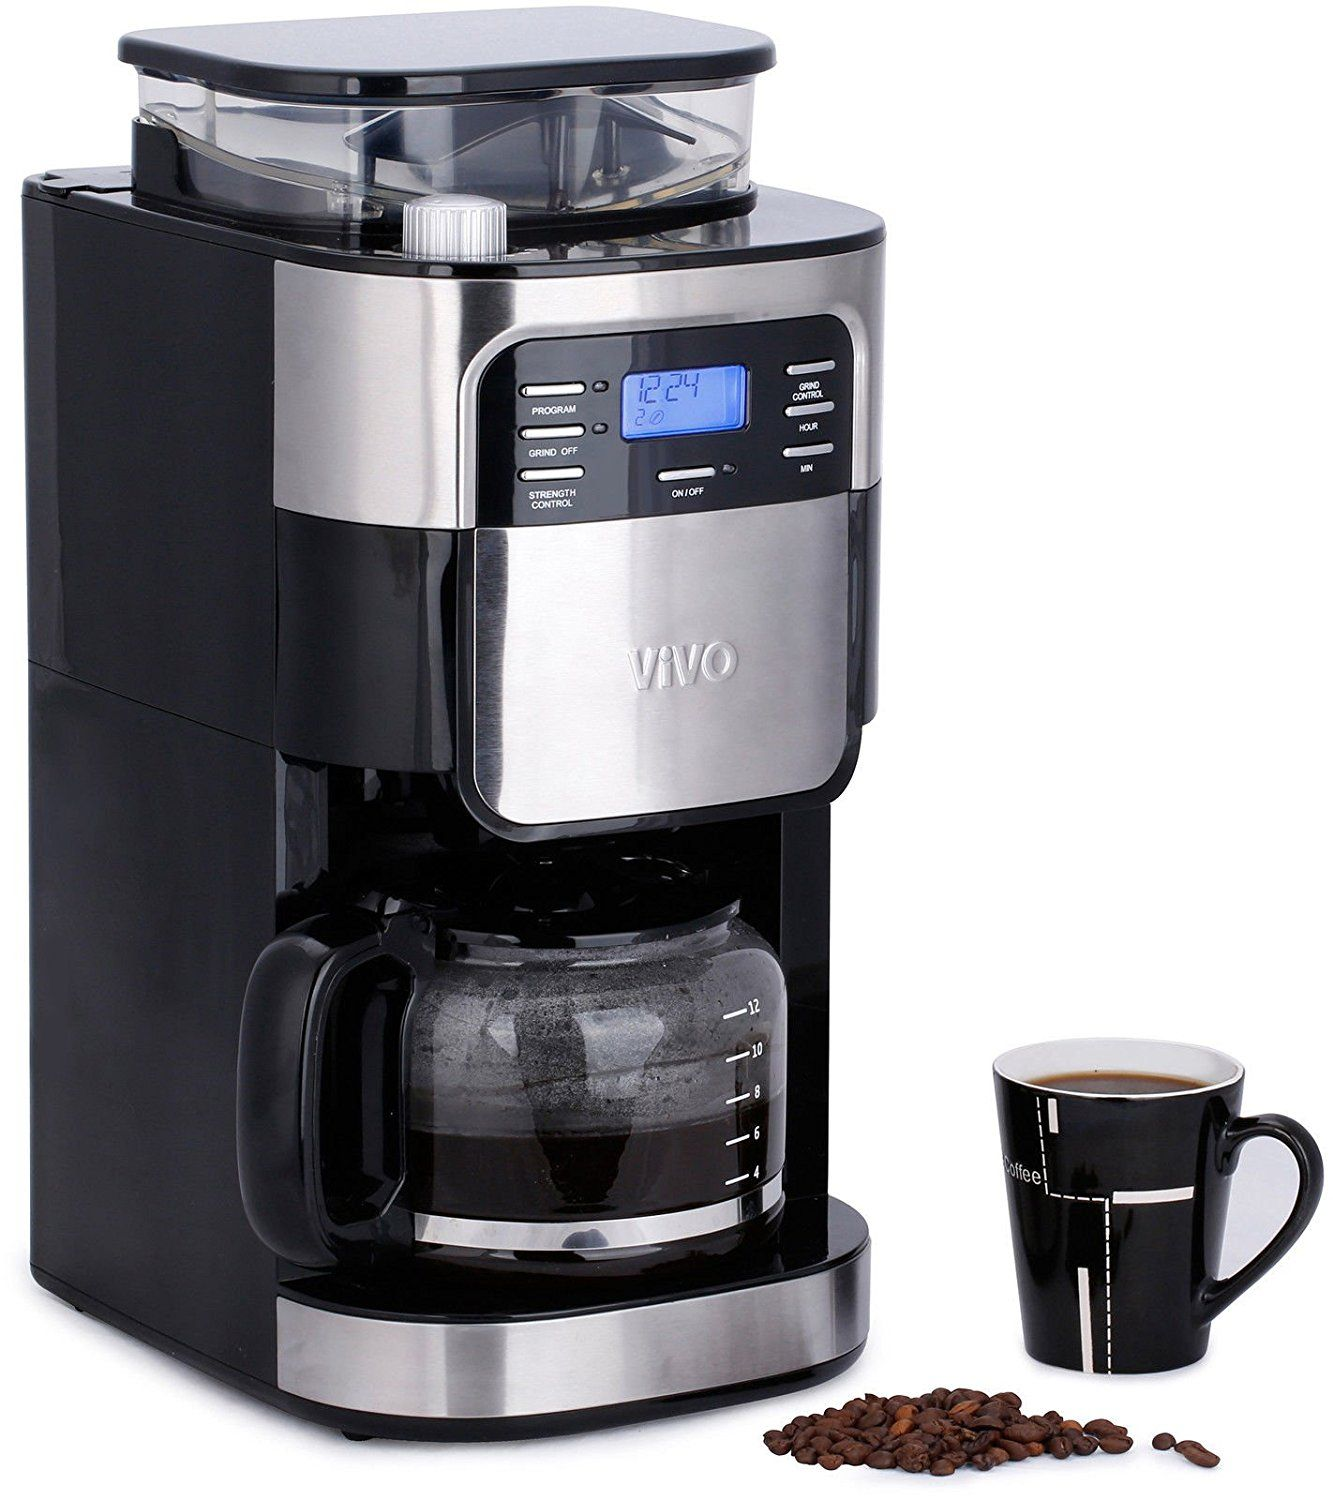 Enjoy Fresh Bean To Cup Ground Coffee Every Day And It S Ready Whenever You Are Thanks To Coffee Maker Machine Coffee Maker With Grinder Best Drip Coffee Maker